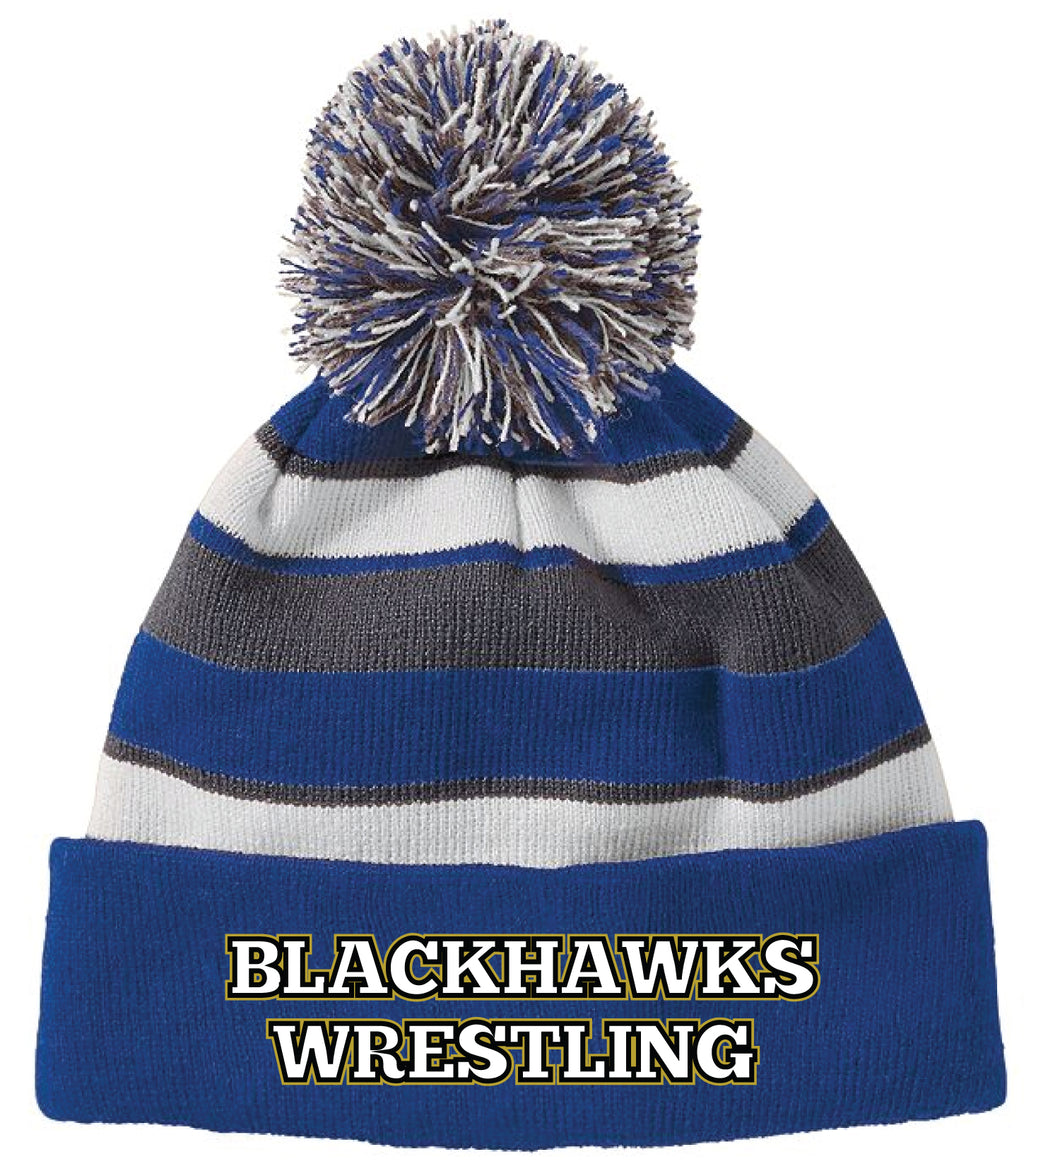 BlackHawks Wrestling Pom Beanie - Royal